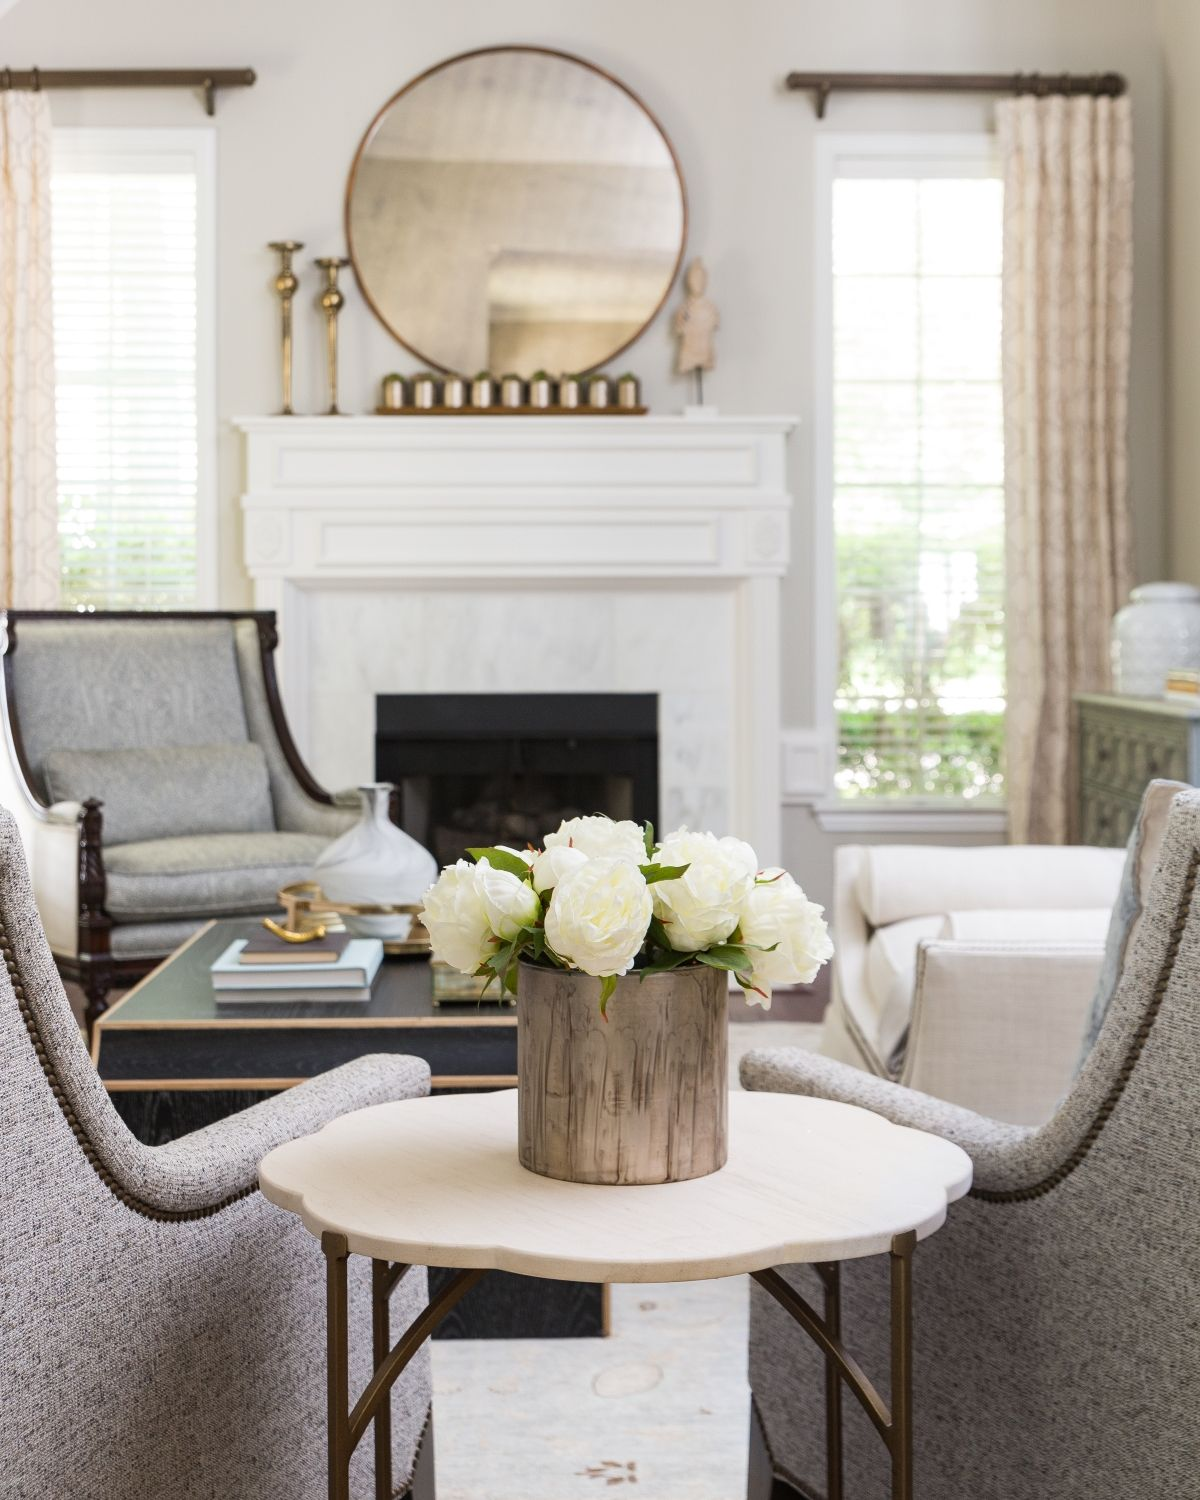 Project Reveal Traditional And Timeless In The Woodlands Terravista Interior Design Group Quality Living Room Furniture Transitional Interior Design Dining Room Updates